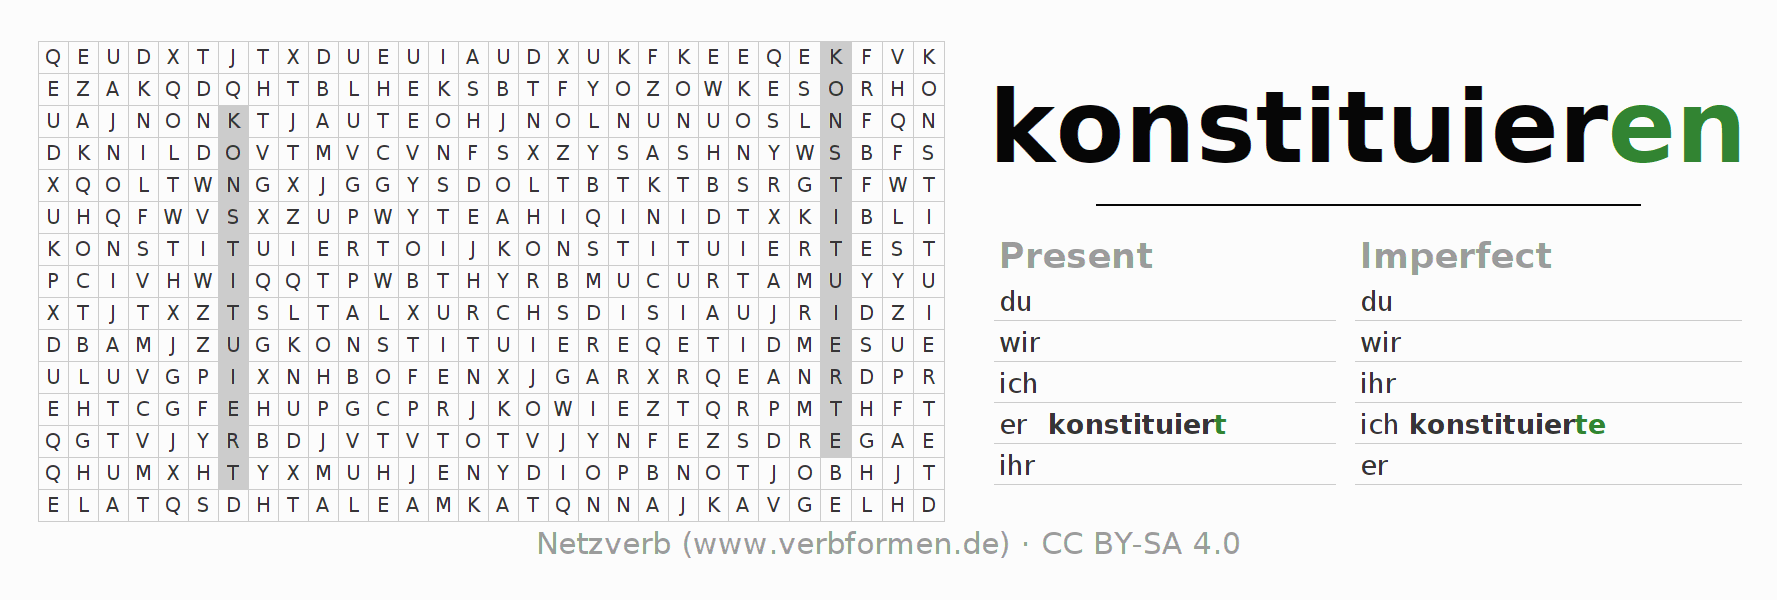 Word search puzzle for the conjugation of the verb konstituieren